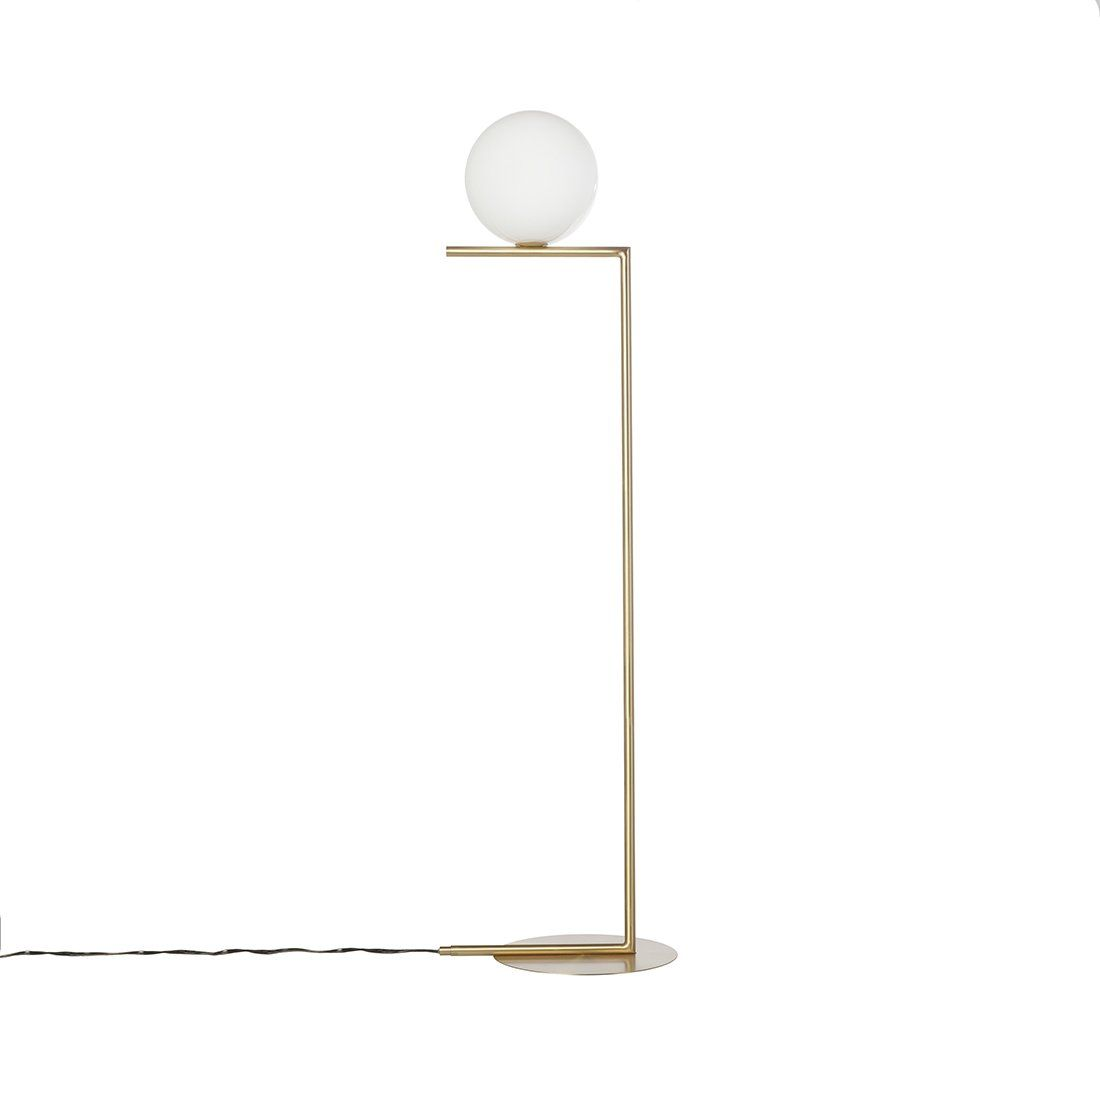 Small Arc Floor Lamp Modern Brass Ball Floor Lamp Small Home Interior Details